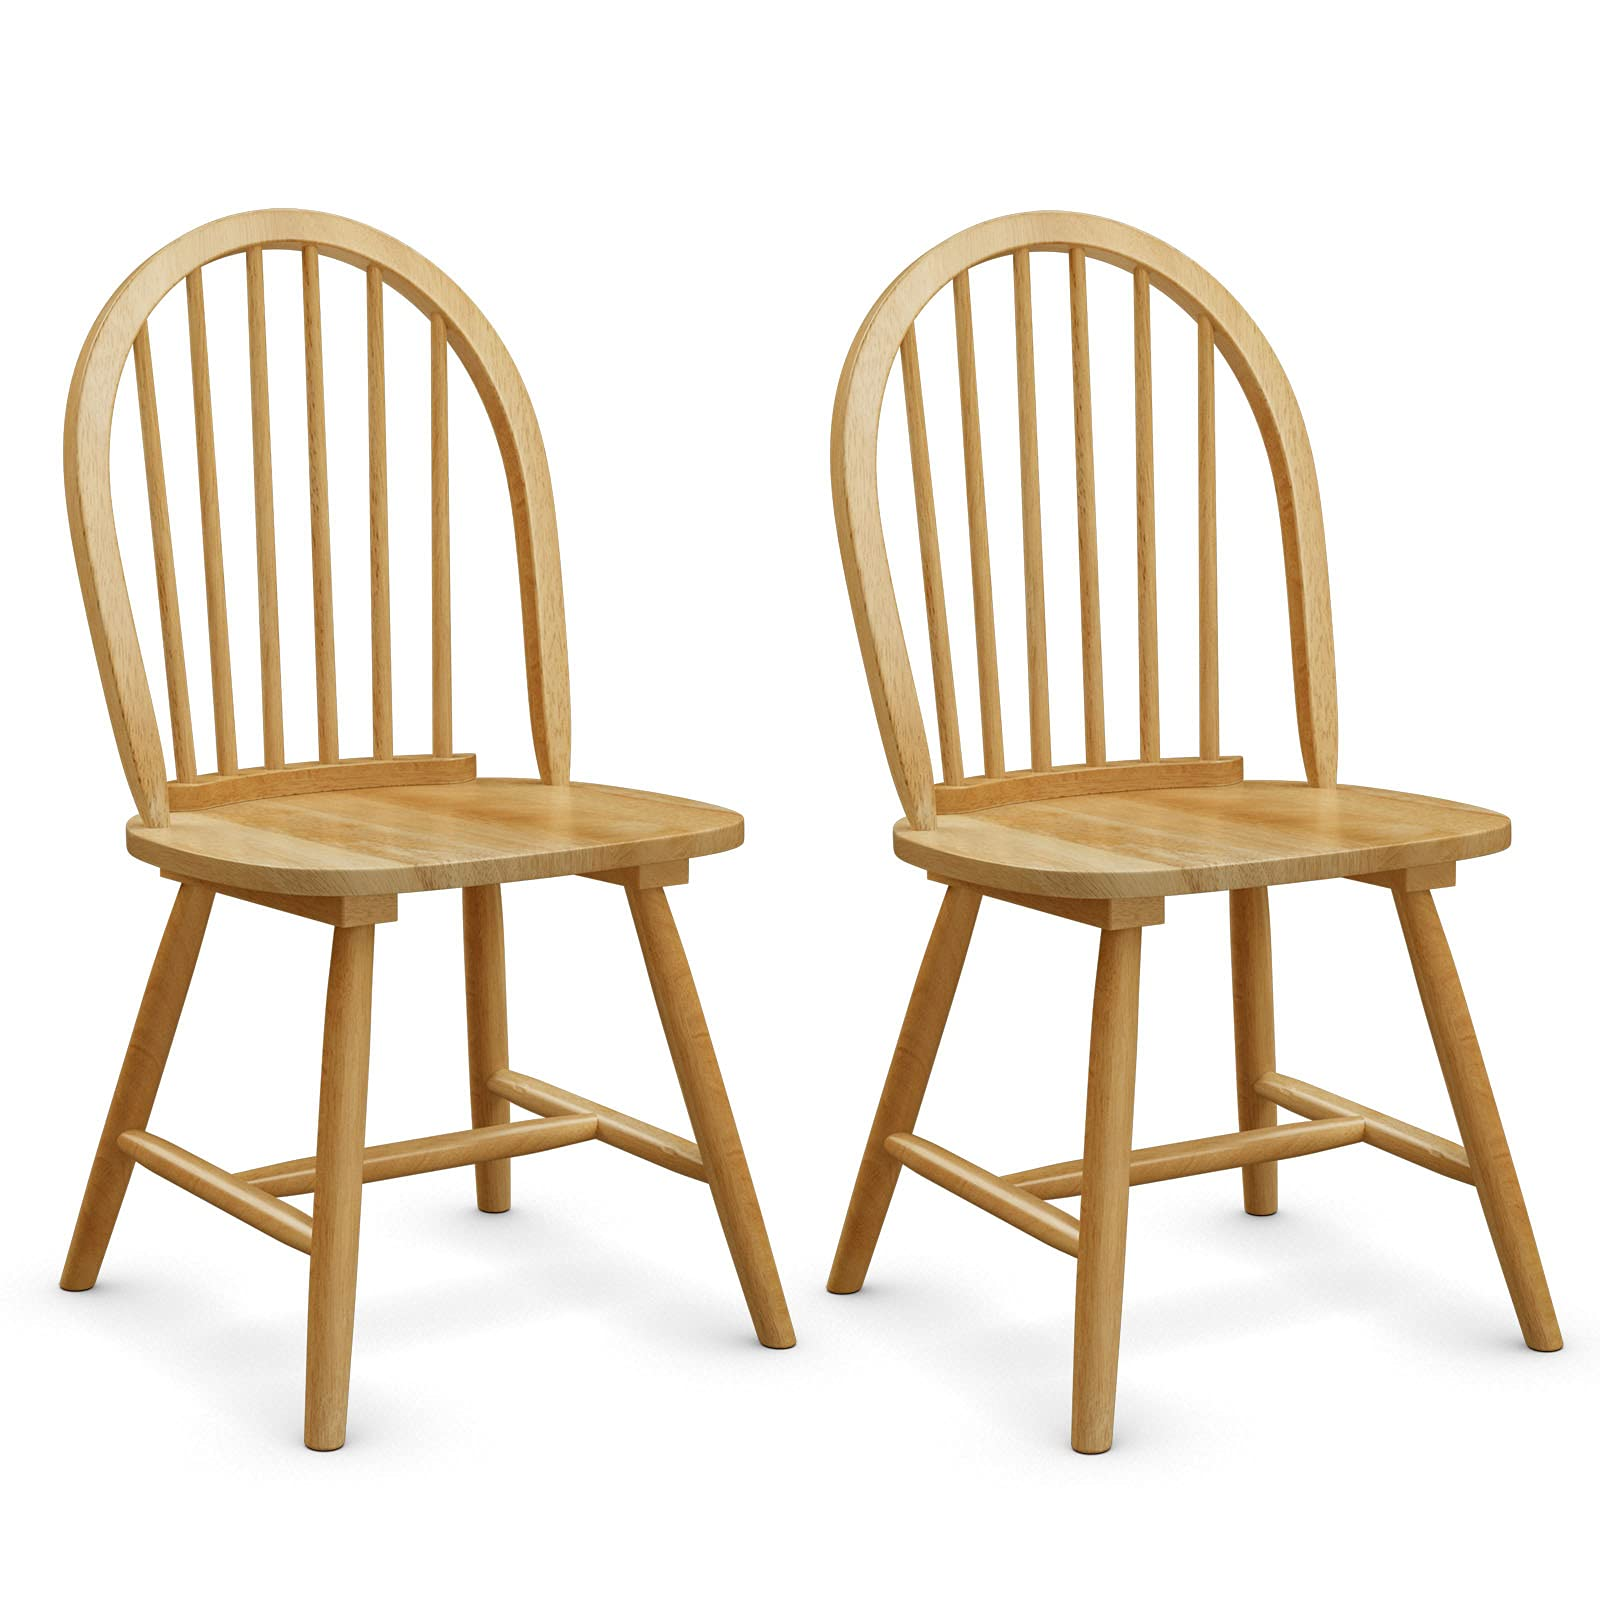 COSTWAY Set of 2 Dining Chairs, Solid Wood Side Chairs with High Spindle Back, Country Style Home Kitchen Dining Room Furniture 2PCS Leisure Chair Seats